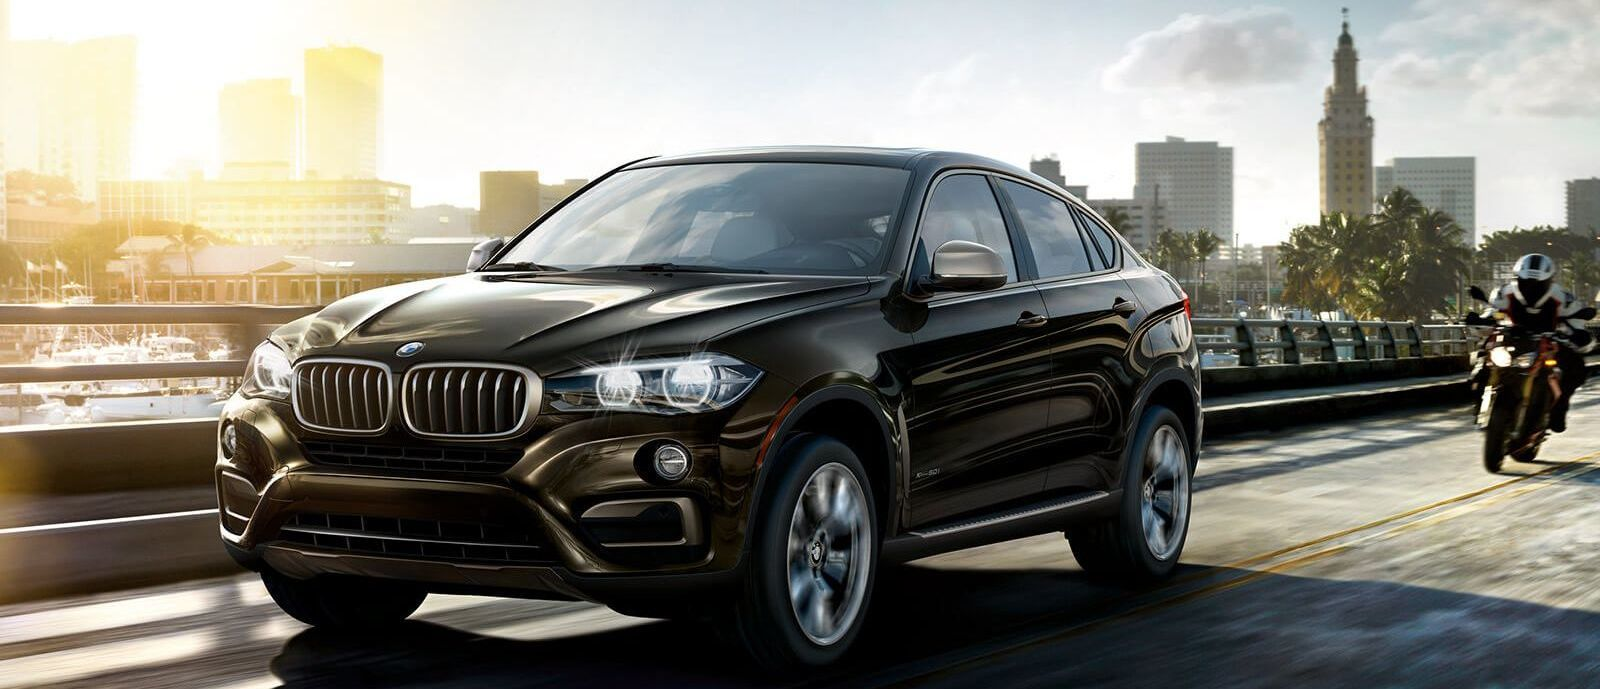 2017 BMW X6 Financing near Olympia Fields, IL